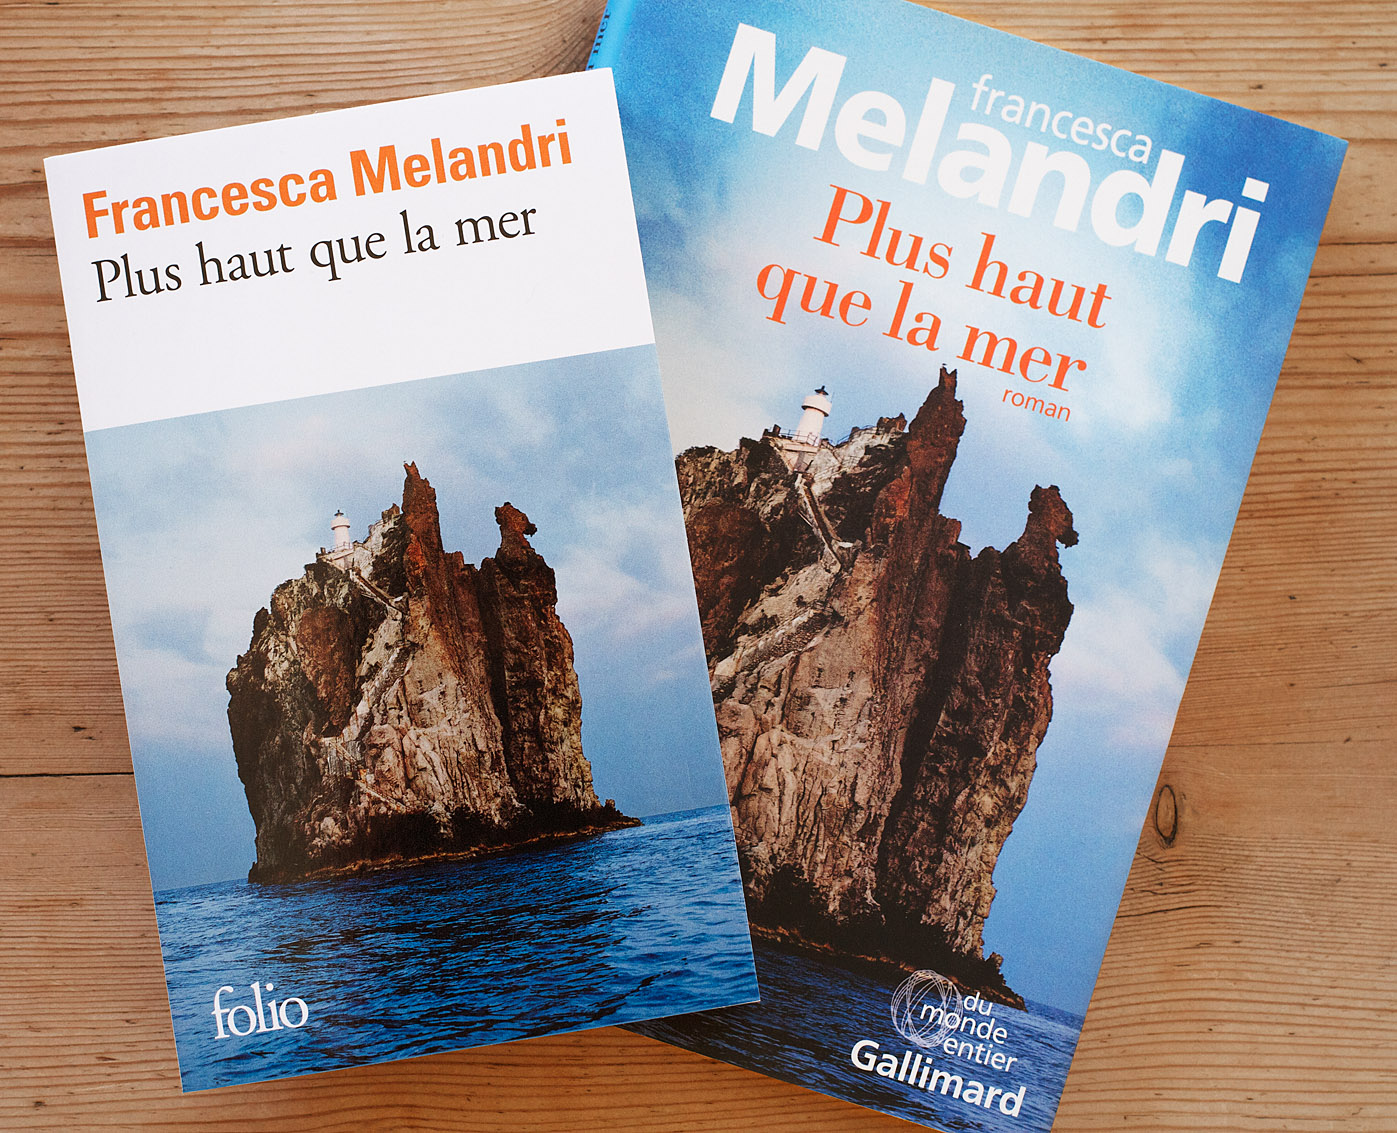 Editions Gallimard.